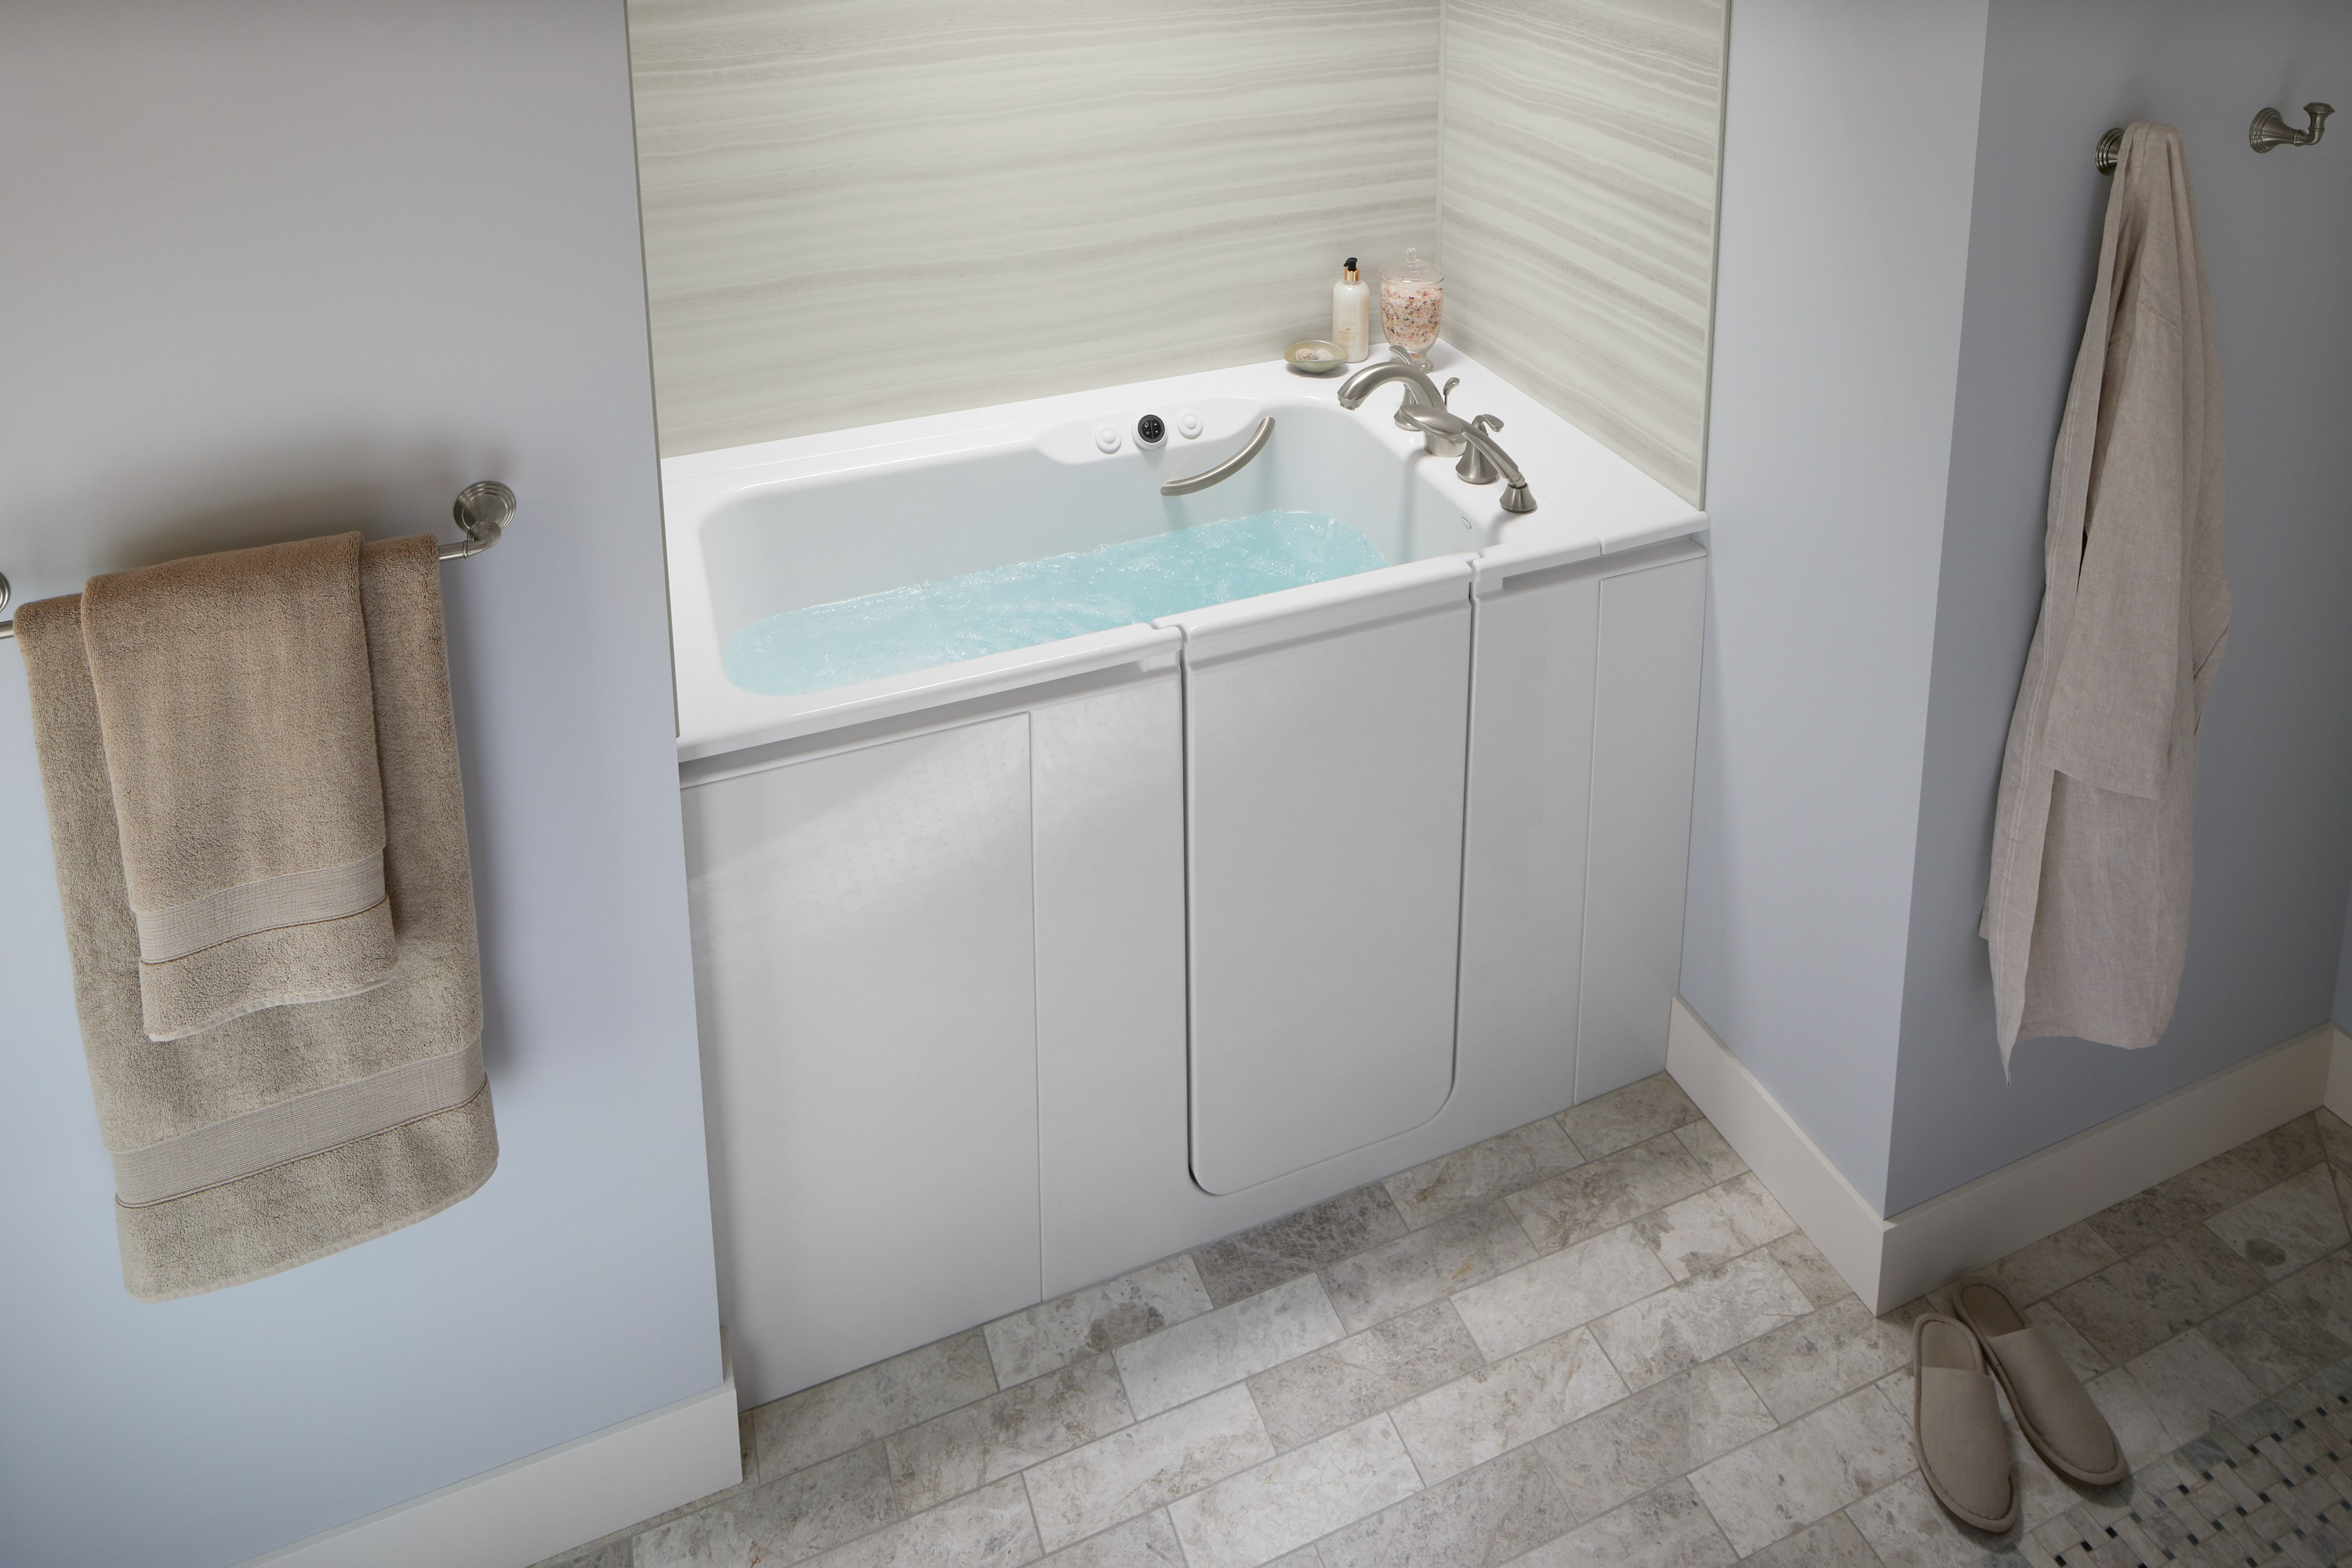 Walk in Tubs, Kohler, Safety Features | Home Smart